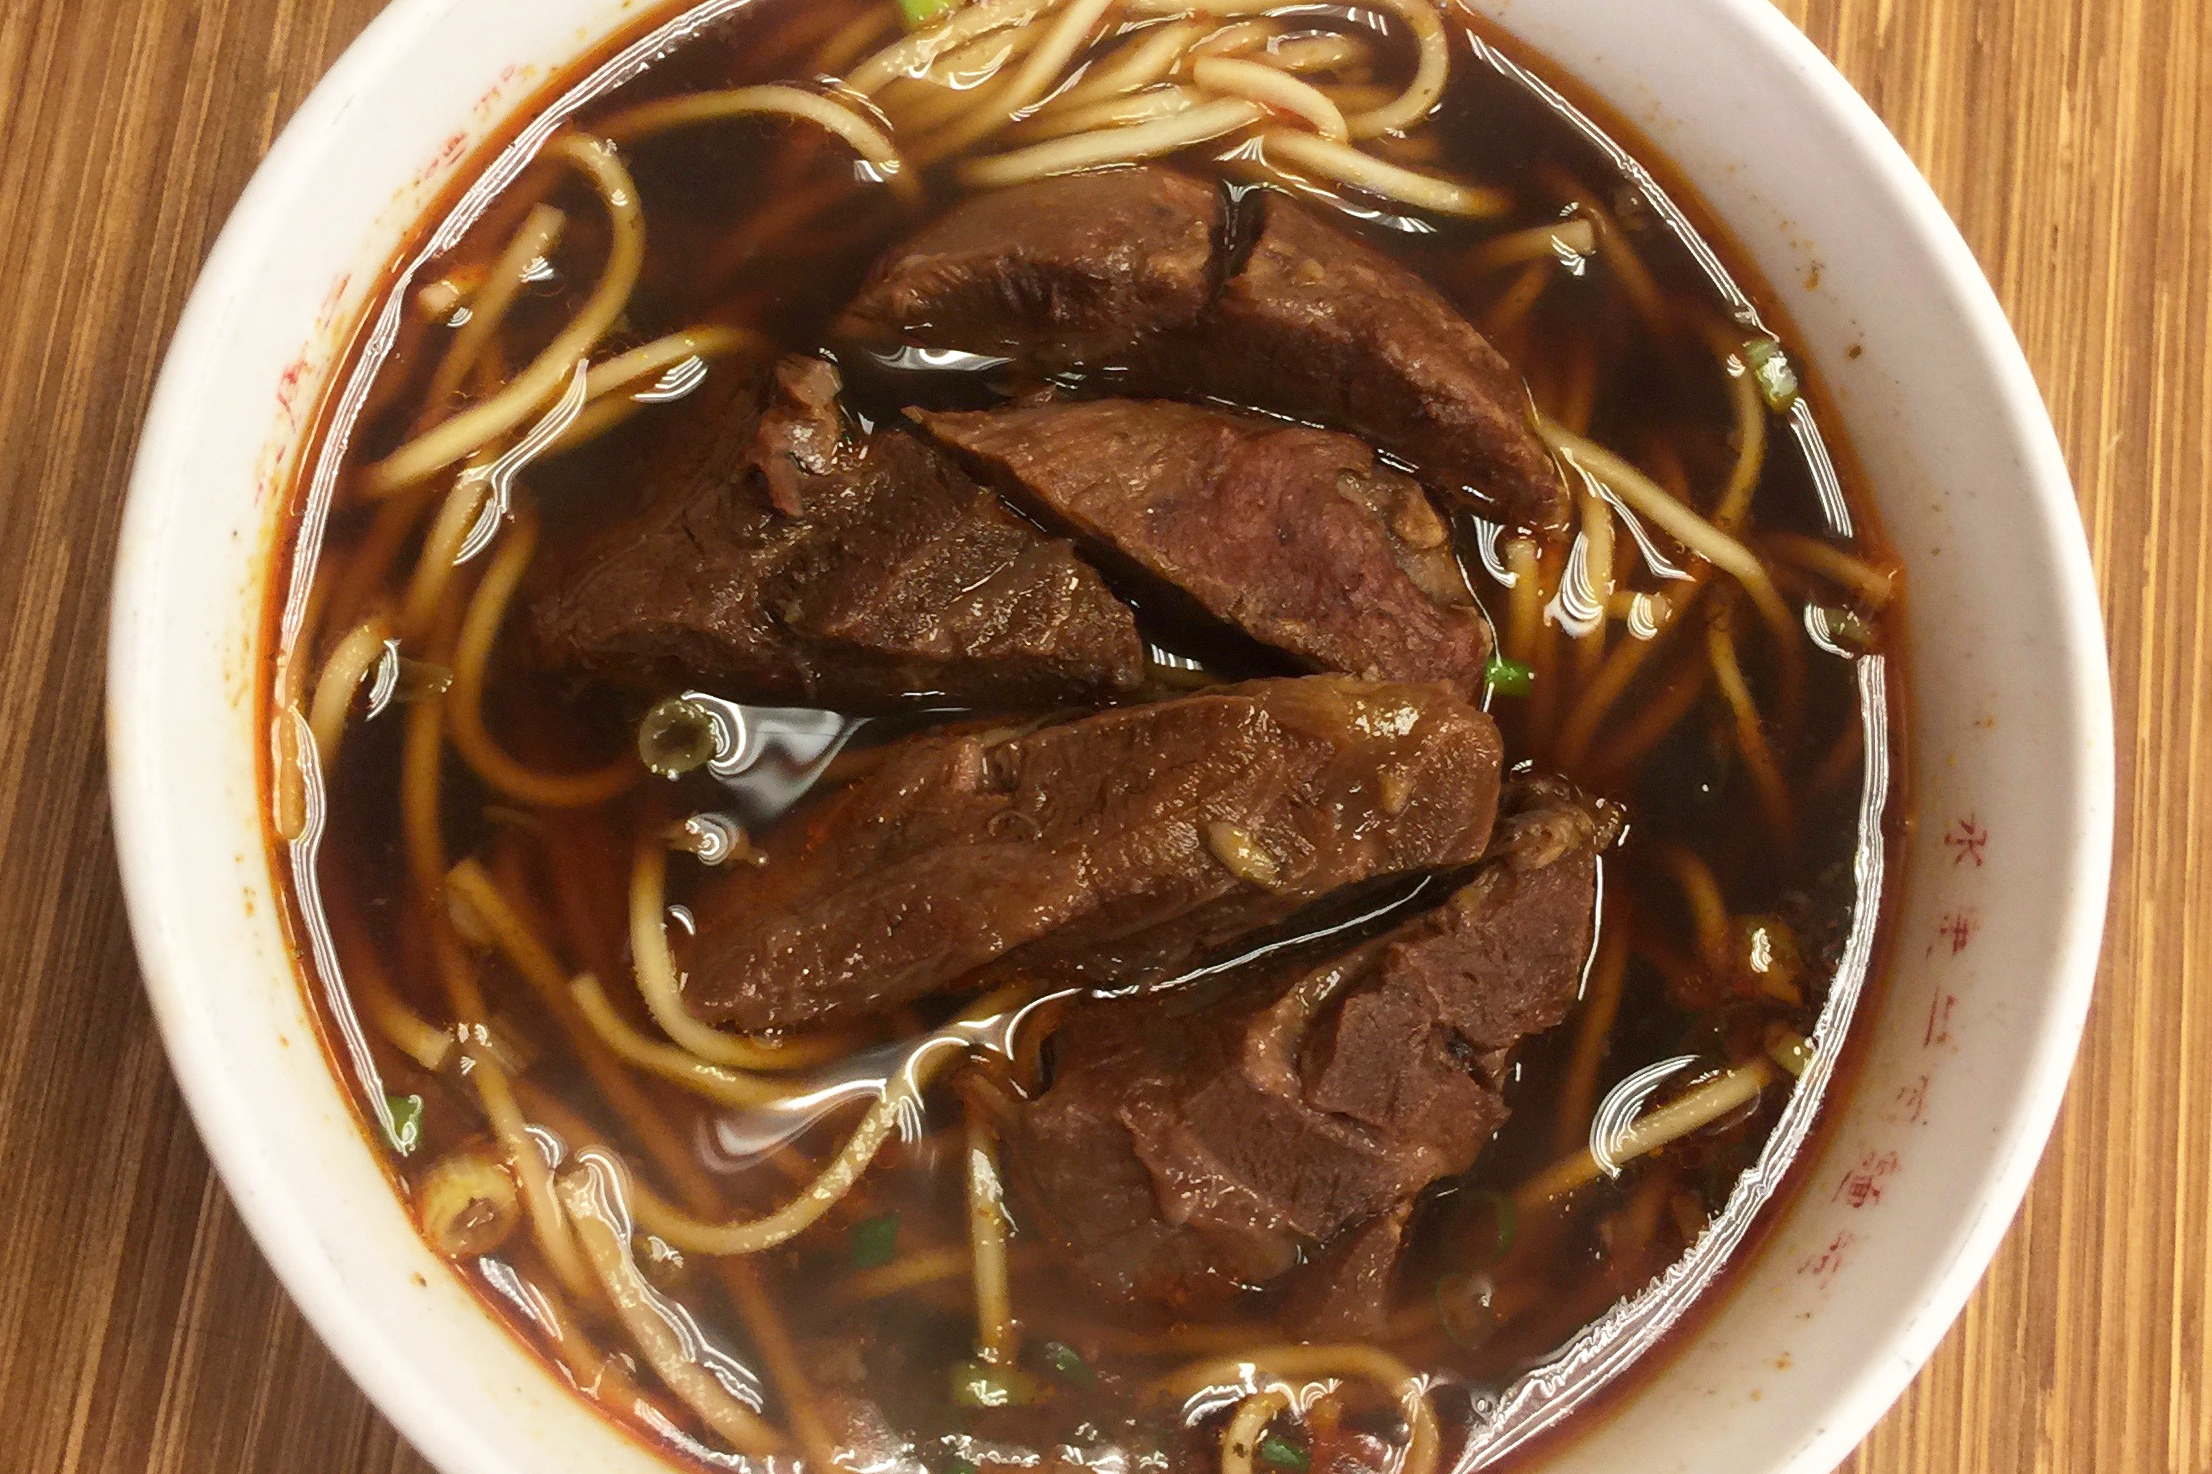 Beef Noodle from Yong Kang Beef Noodle